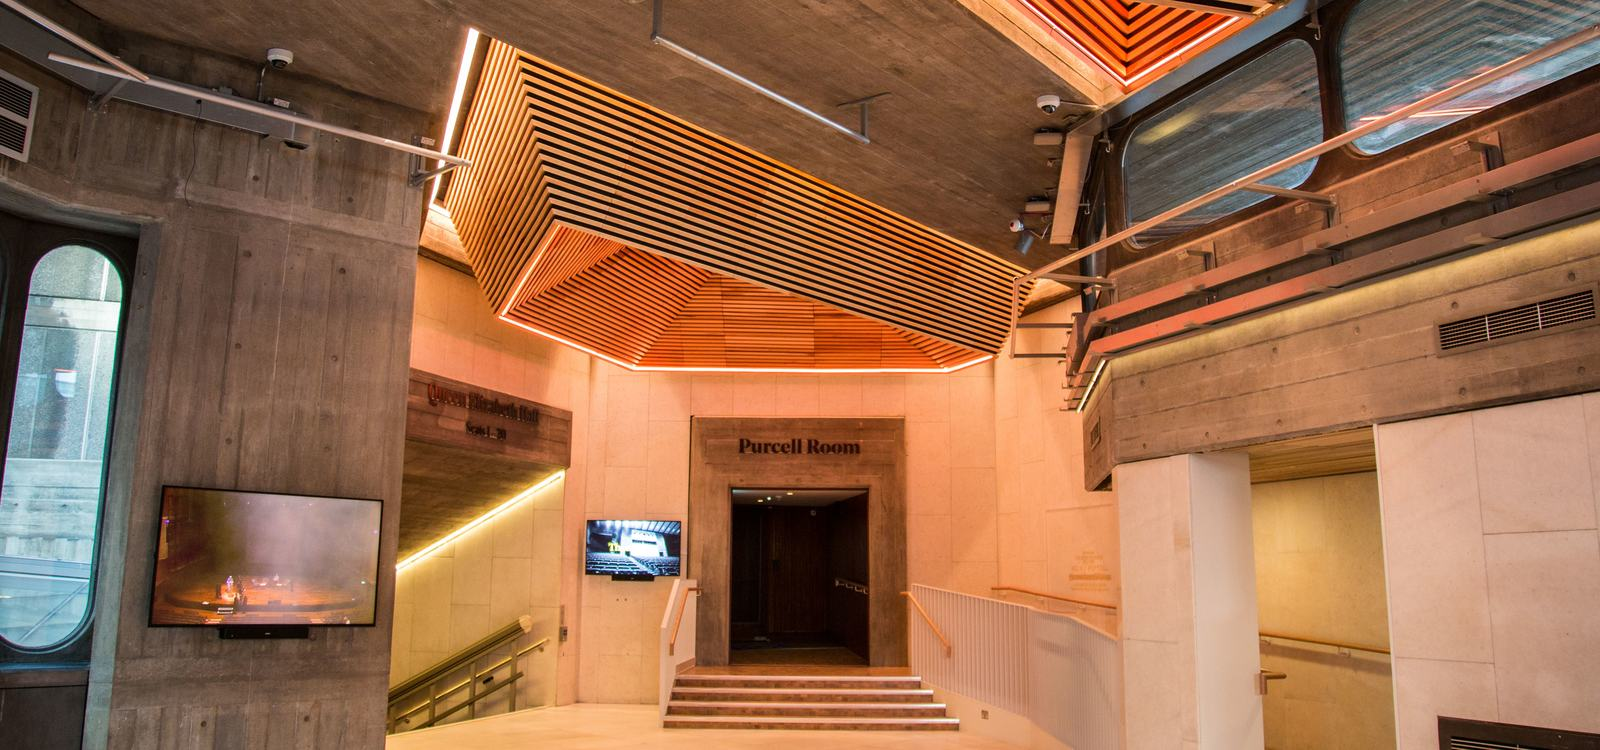 Purcell Room entrance